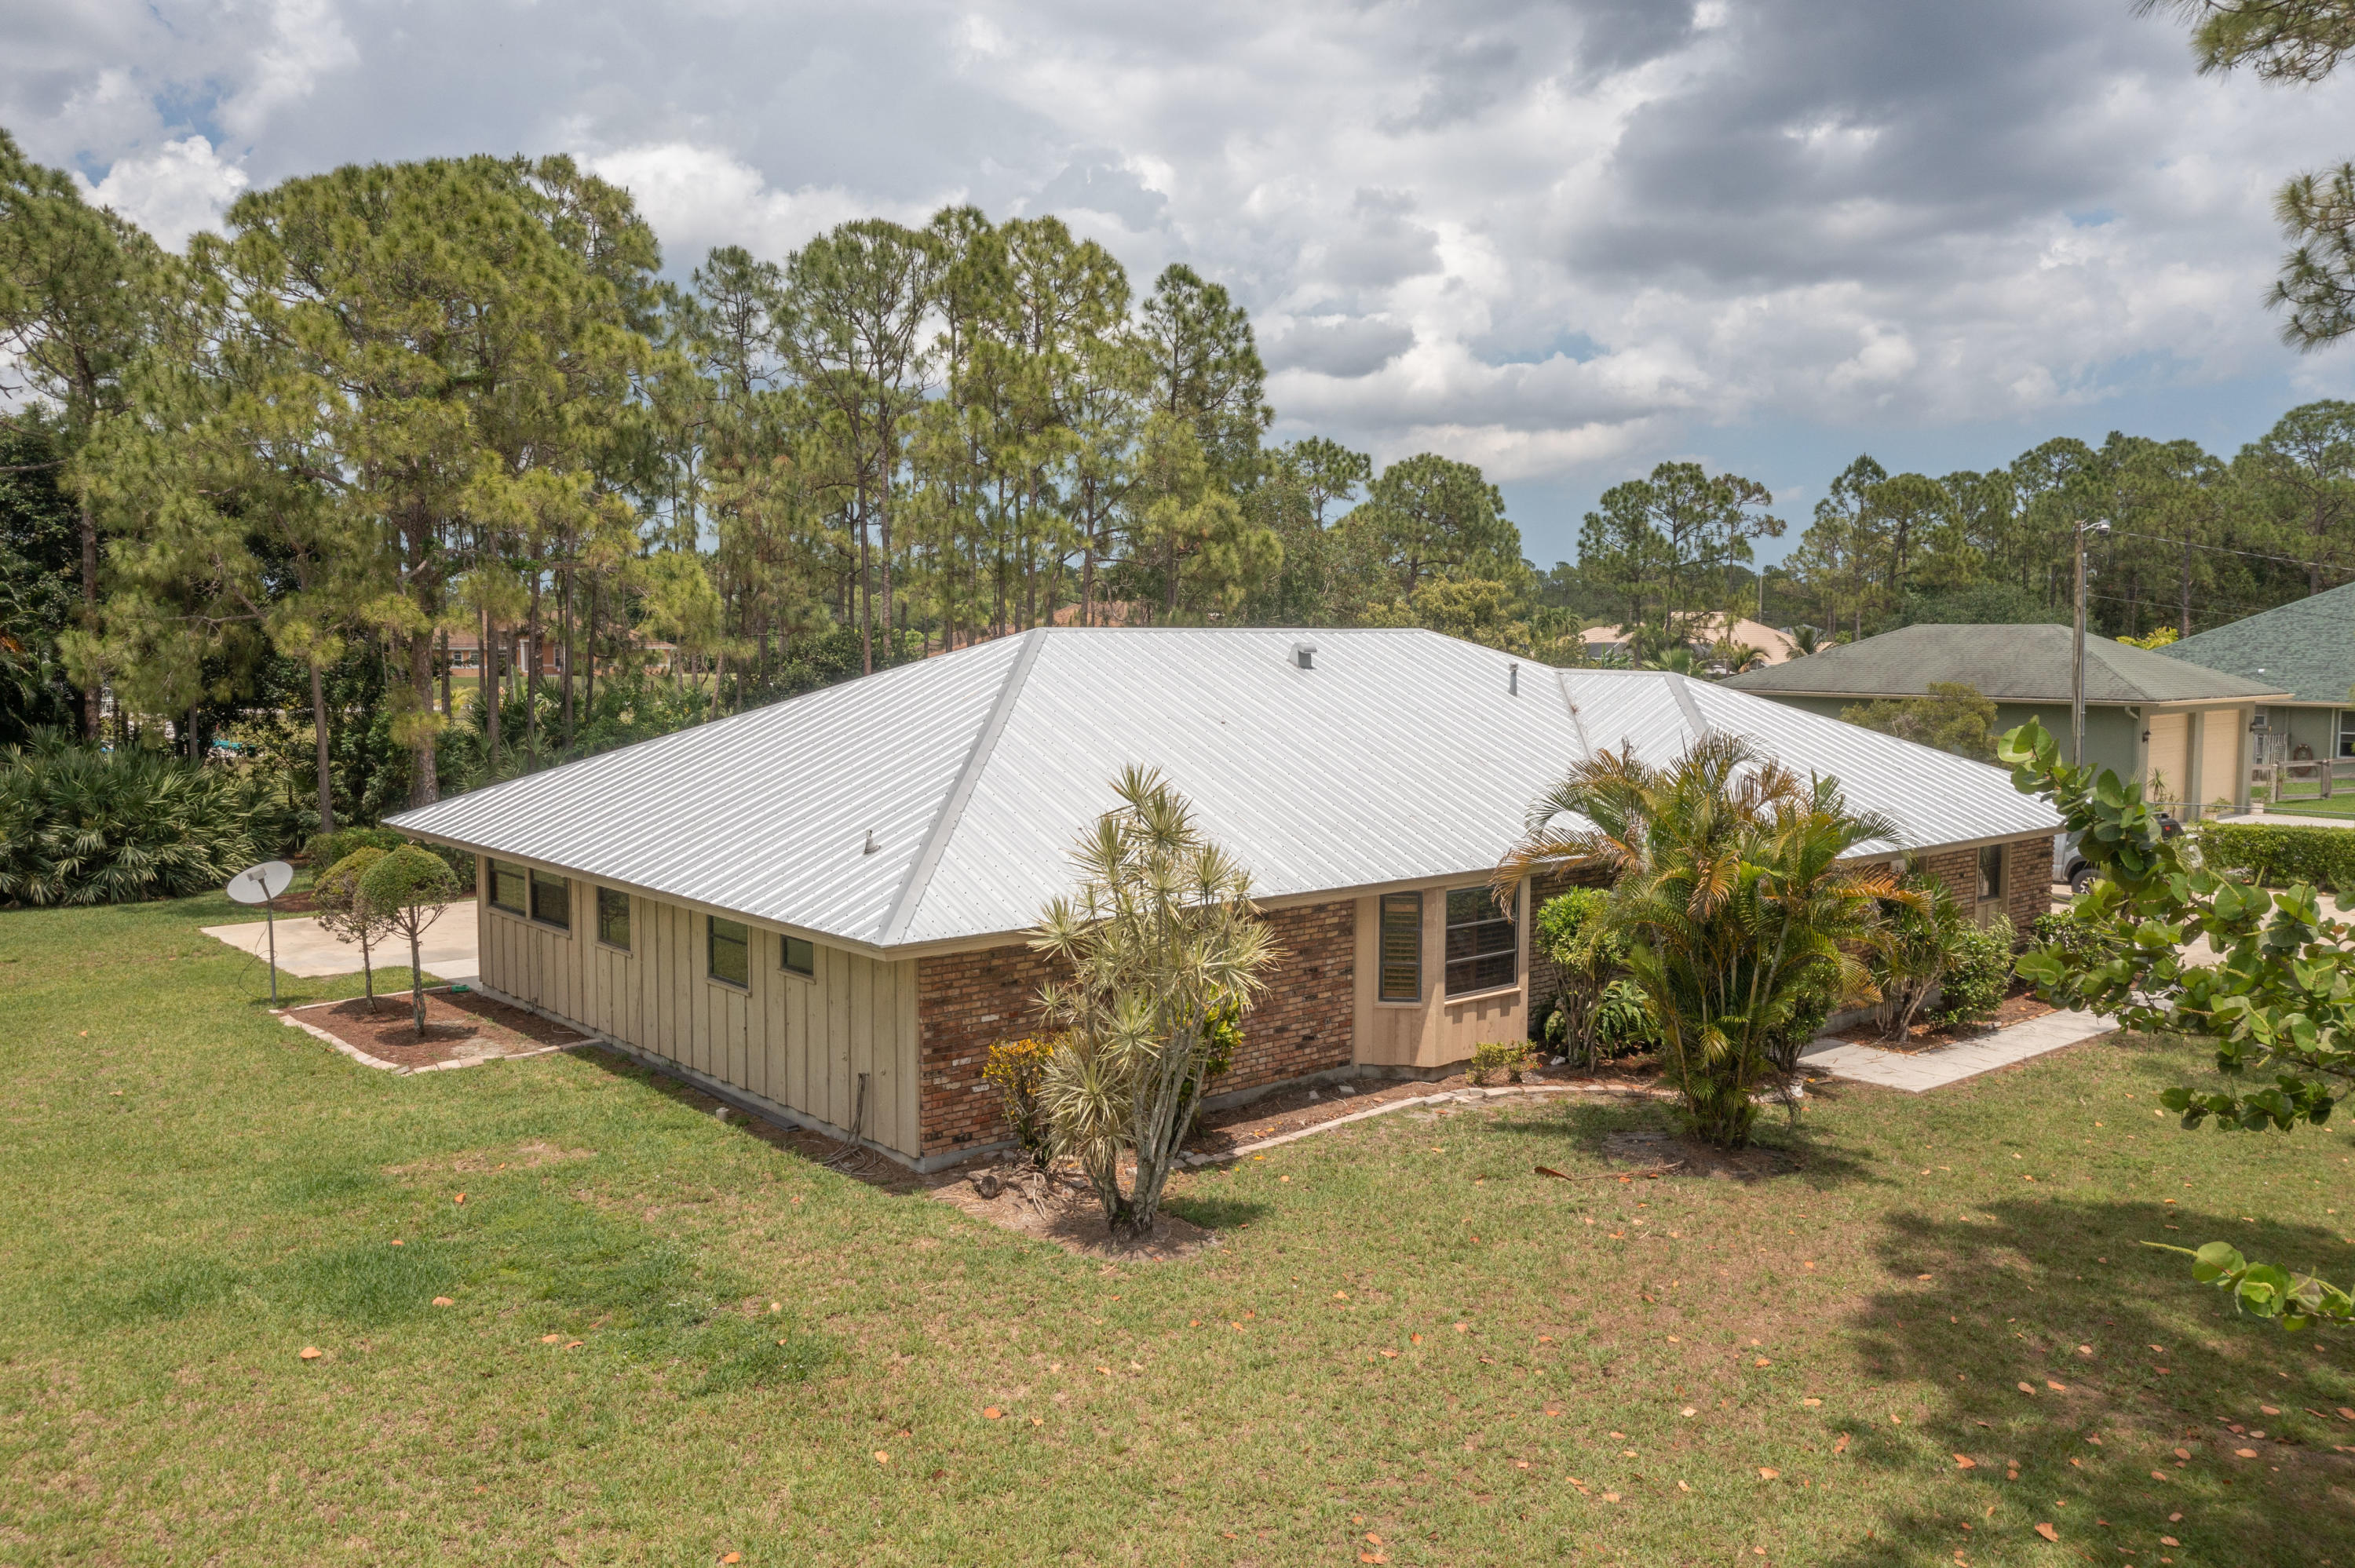 Home for sale in The Acreage - Unincorporated The Acreage Florida